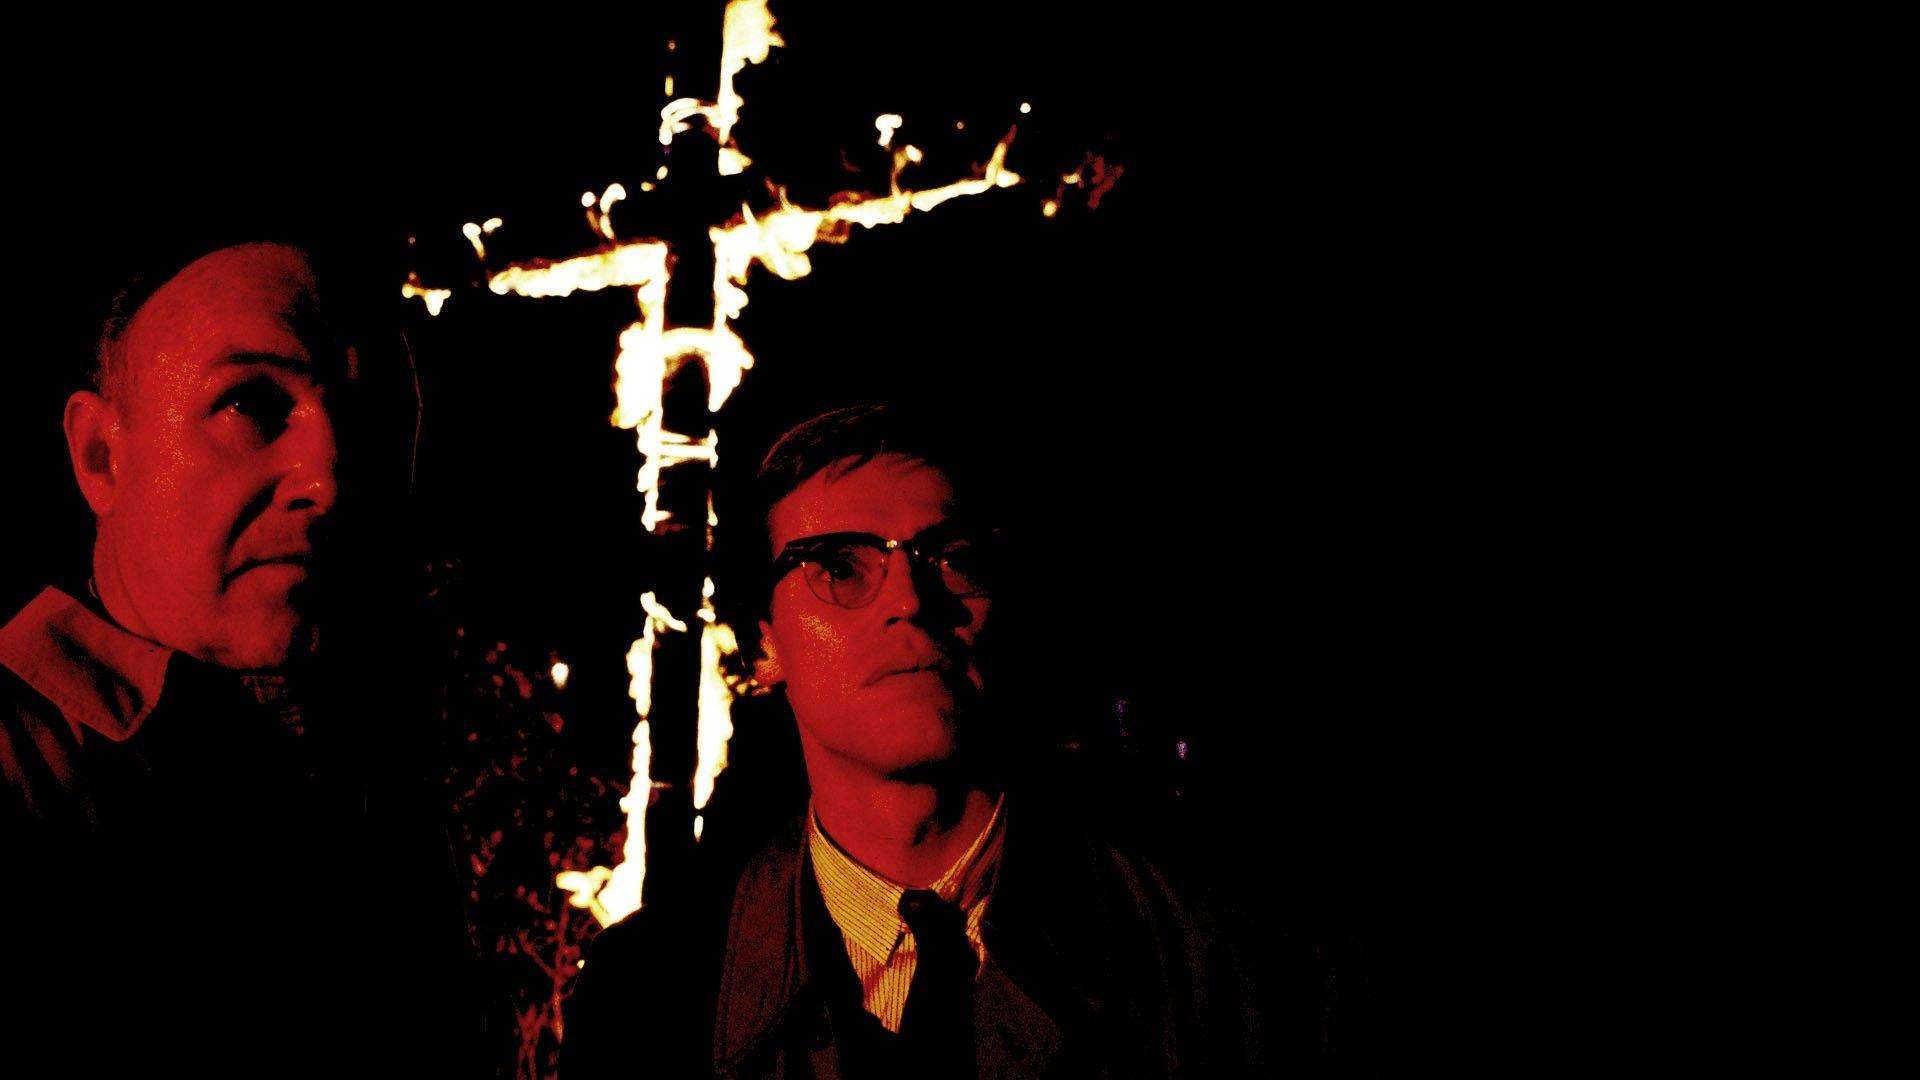 Mississippi Burning HD Wallpapers